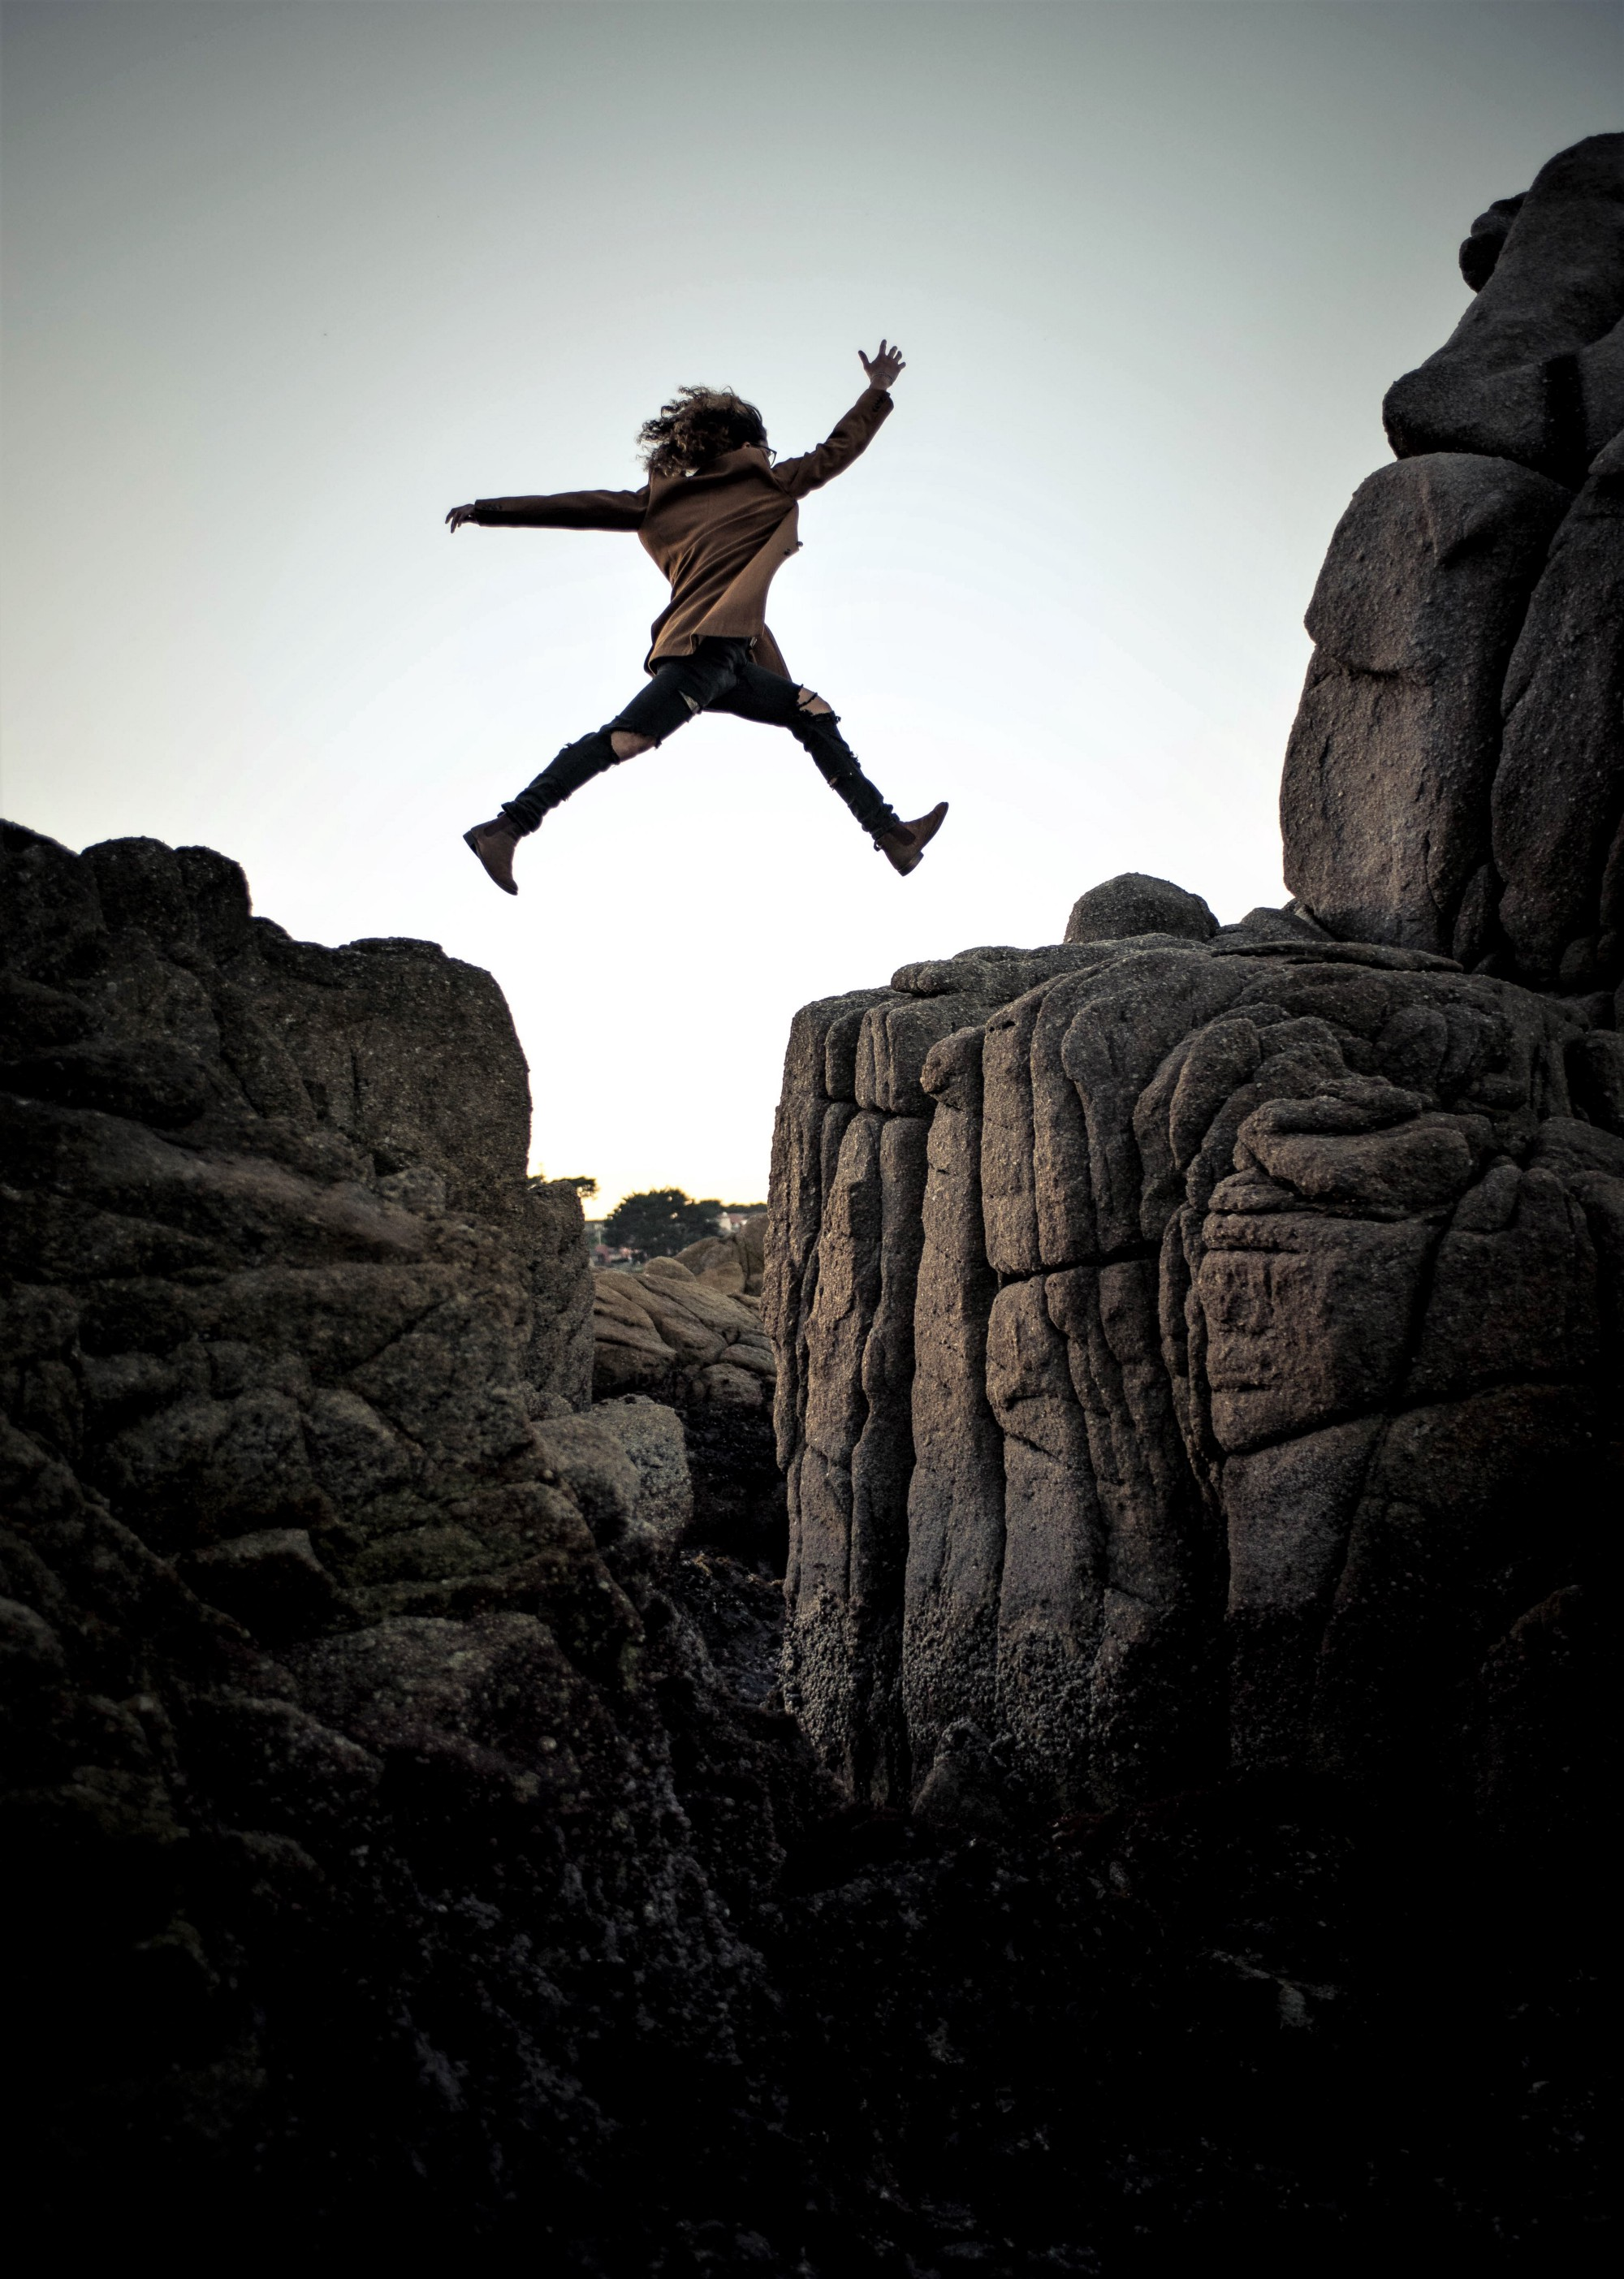 Person jumping over a chasm.